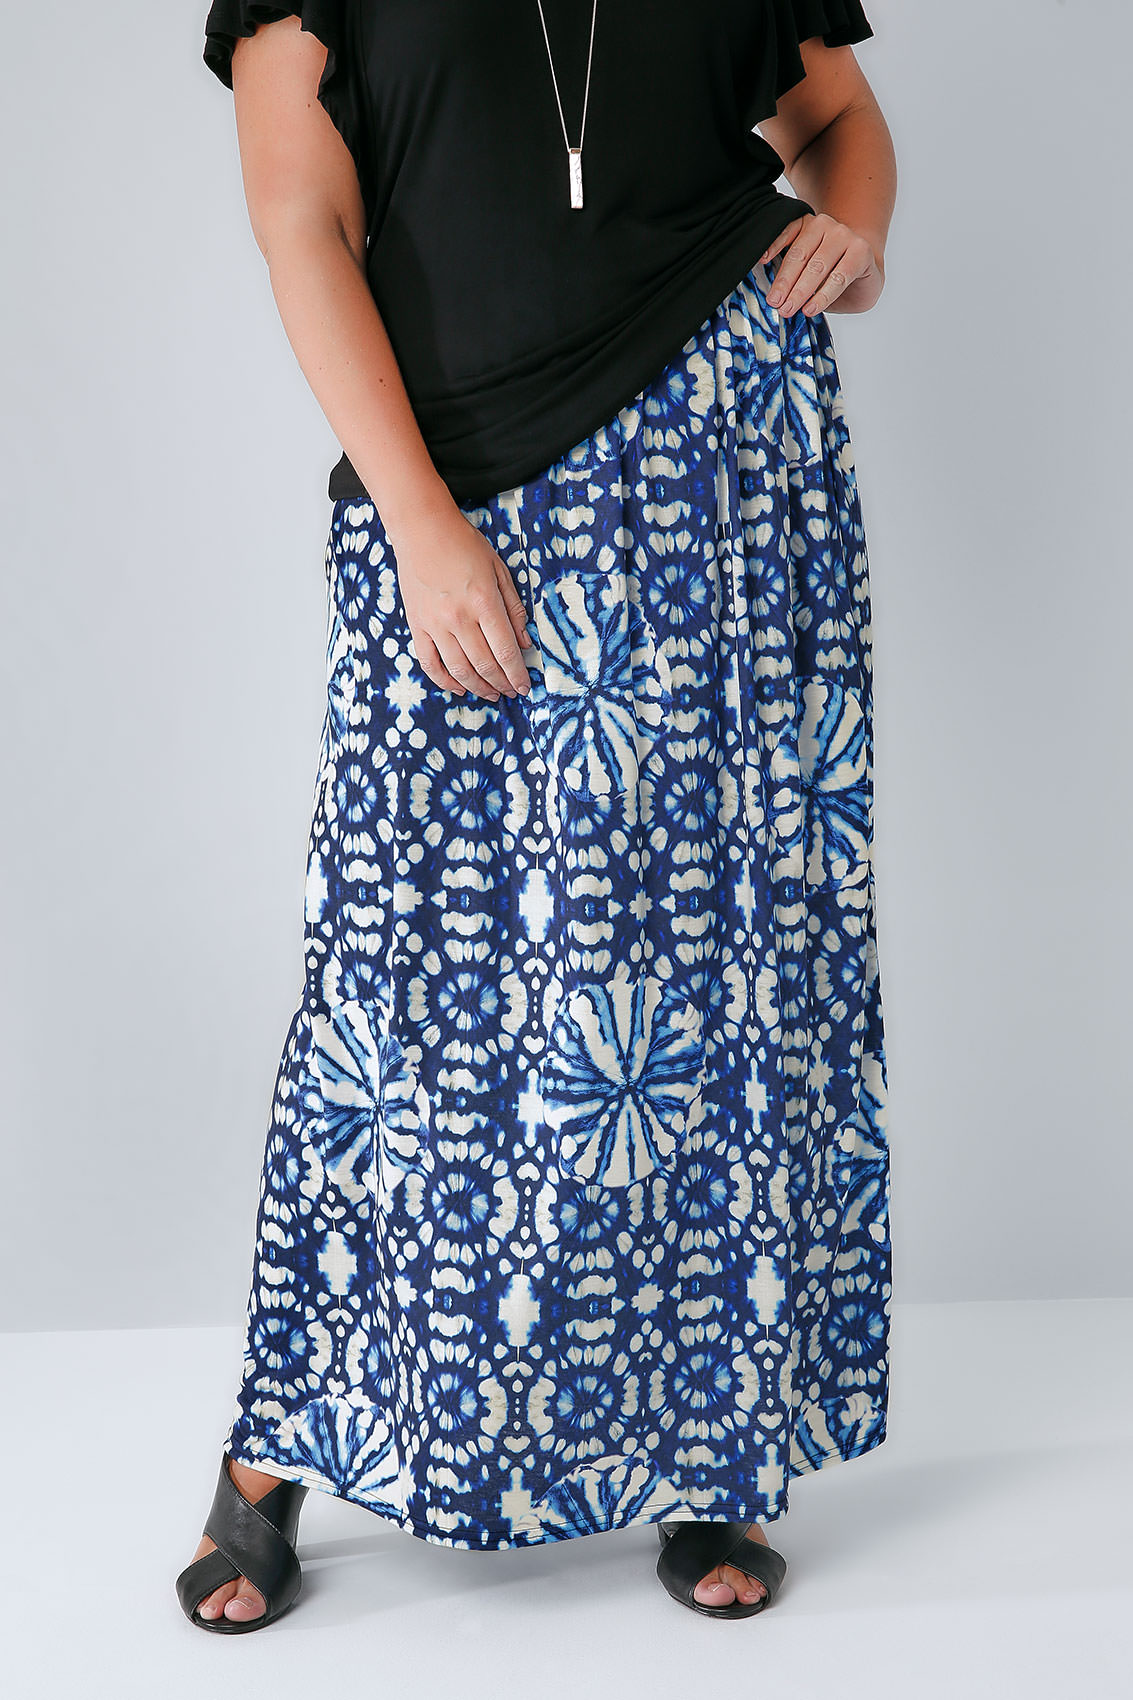 YOURS LONDON Blue u0026 White Circle Tie Dye Print Jersey Maxi Skirt Plus size 16 to 36